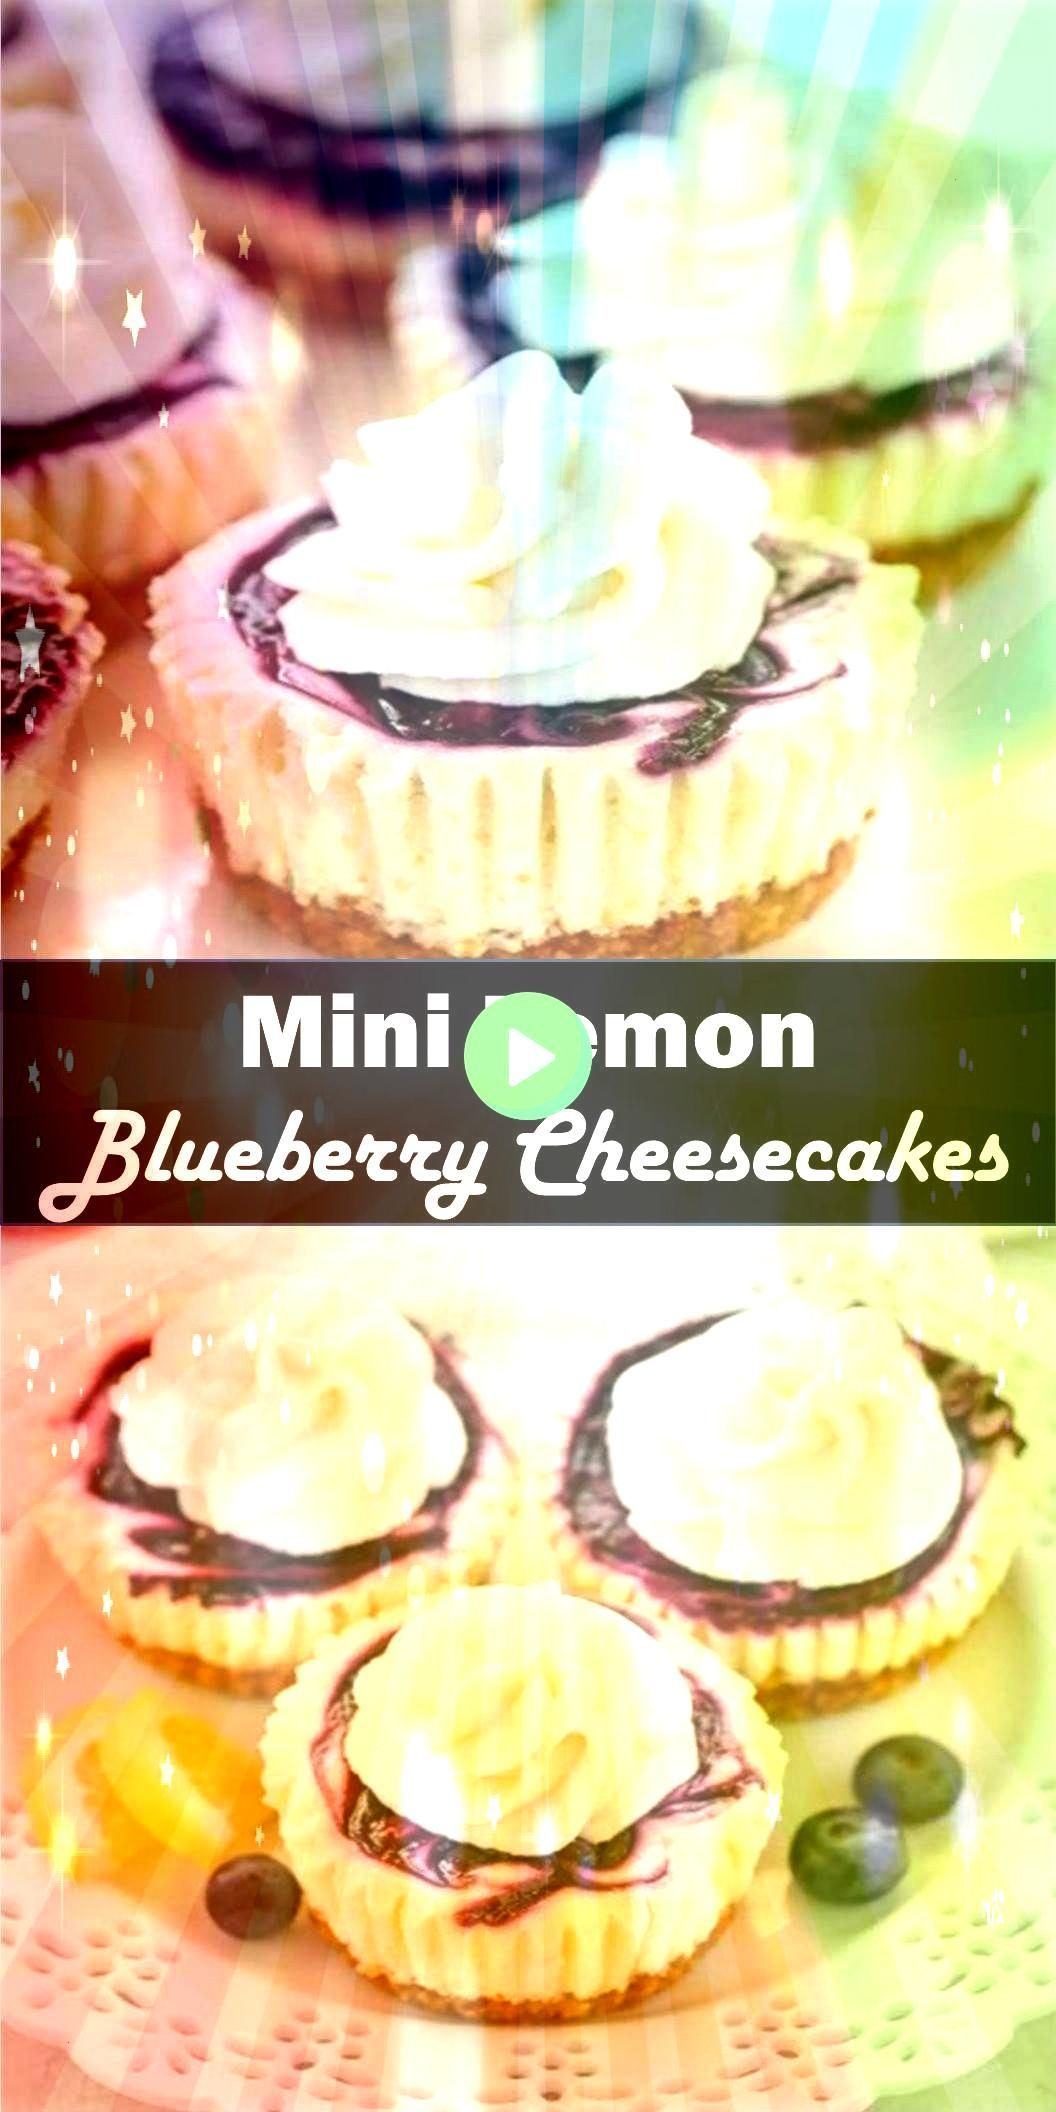 #cheesecakerecipes #bestveganrecipes #cheesecakes #cheesecake #delicious #blueberry #homemade #feature #filling #cracker #recipes #dessert #special #healthy #simpleDelicious and healthy family choice special food and drink Mini Lemon Blueberry Cheesecakes These Mini Lemon Blueberry Cheesecakes feature an easy homemade graham cracker crust, smooth and creamy lemon cheesecake filling, and a simple blueberry swirl!Delicious and healthy family choice special food and drink Mini Lemon Blueberr... #le #lemonblueberrycheesecake